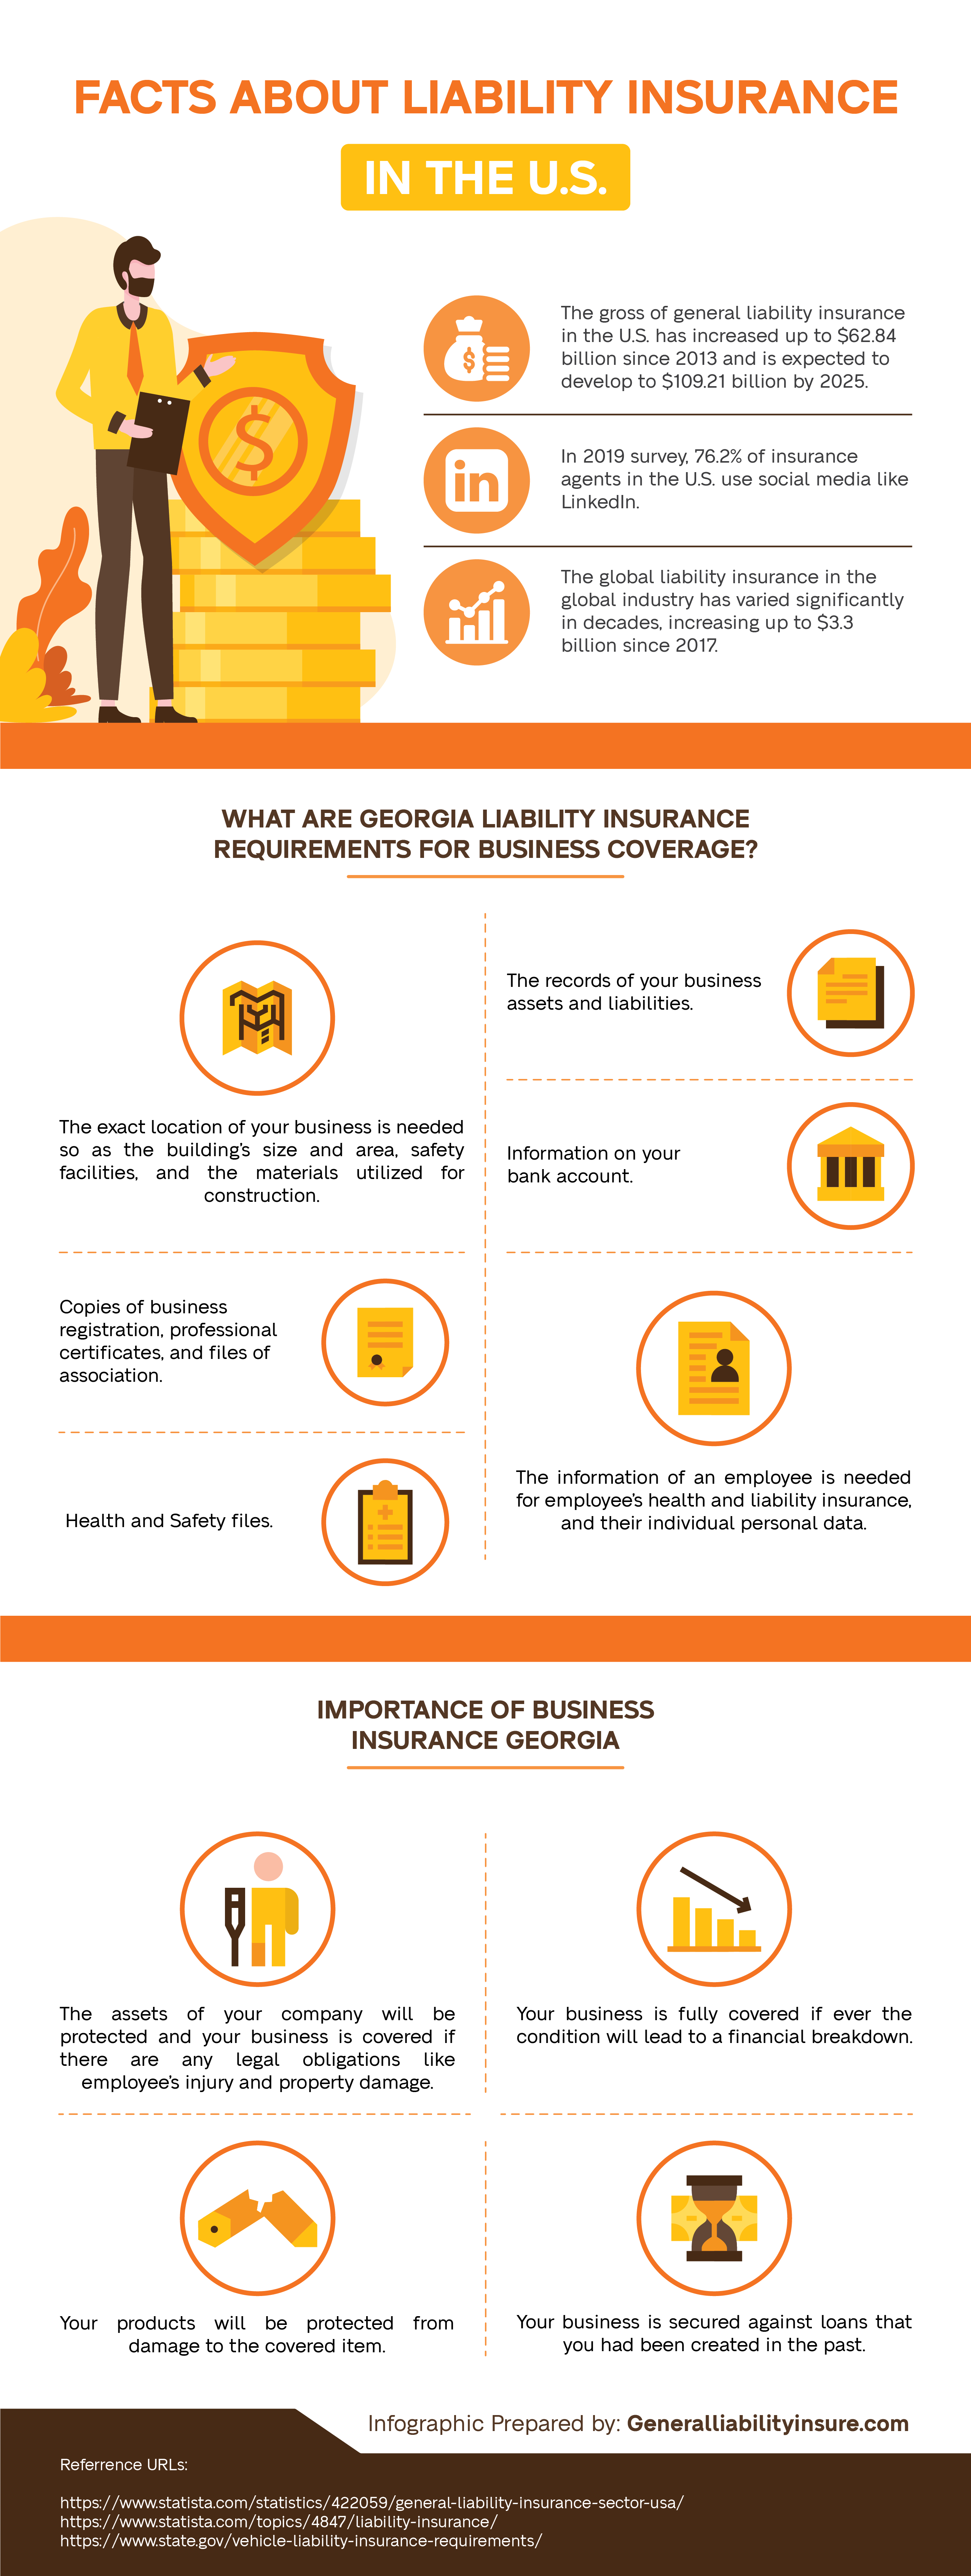 Need Business Insurance For Corporate Business? Business